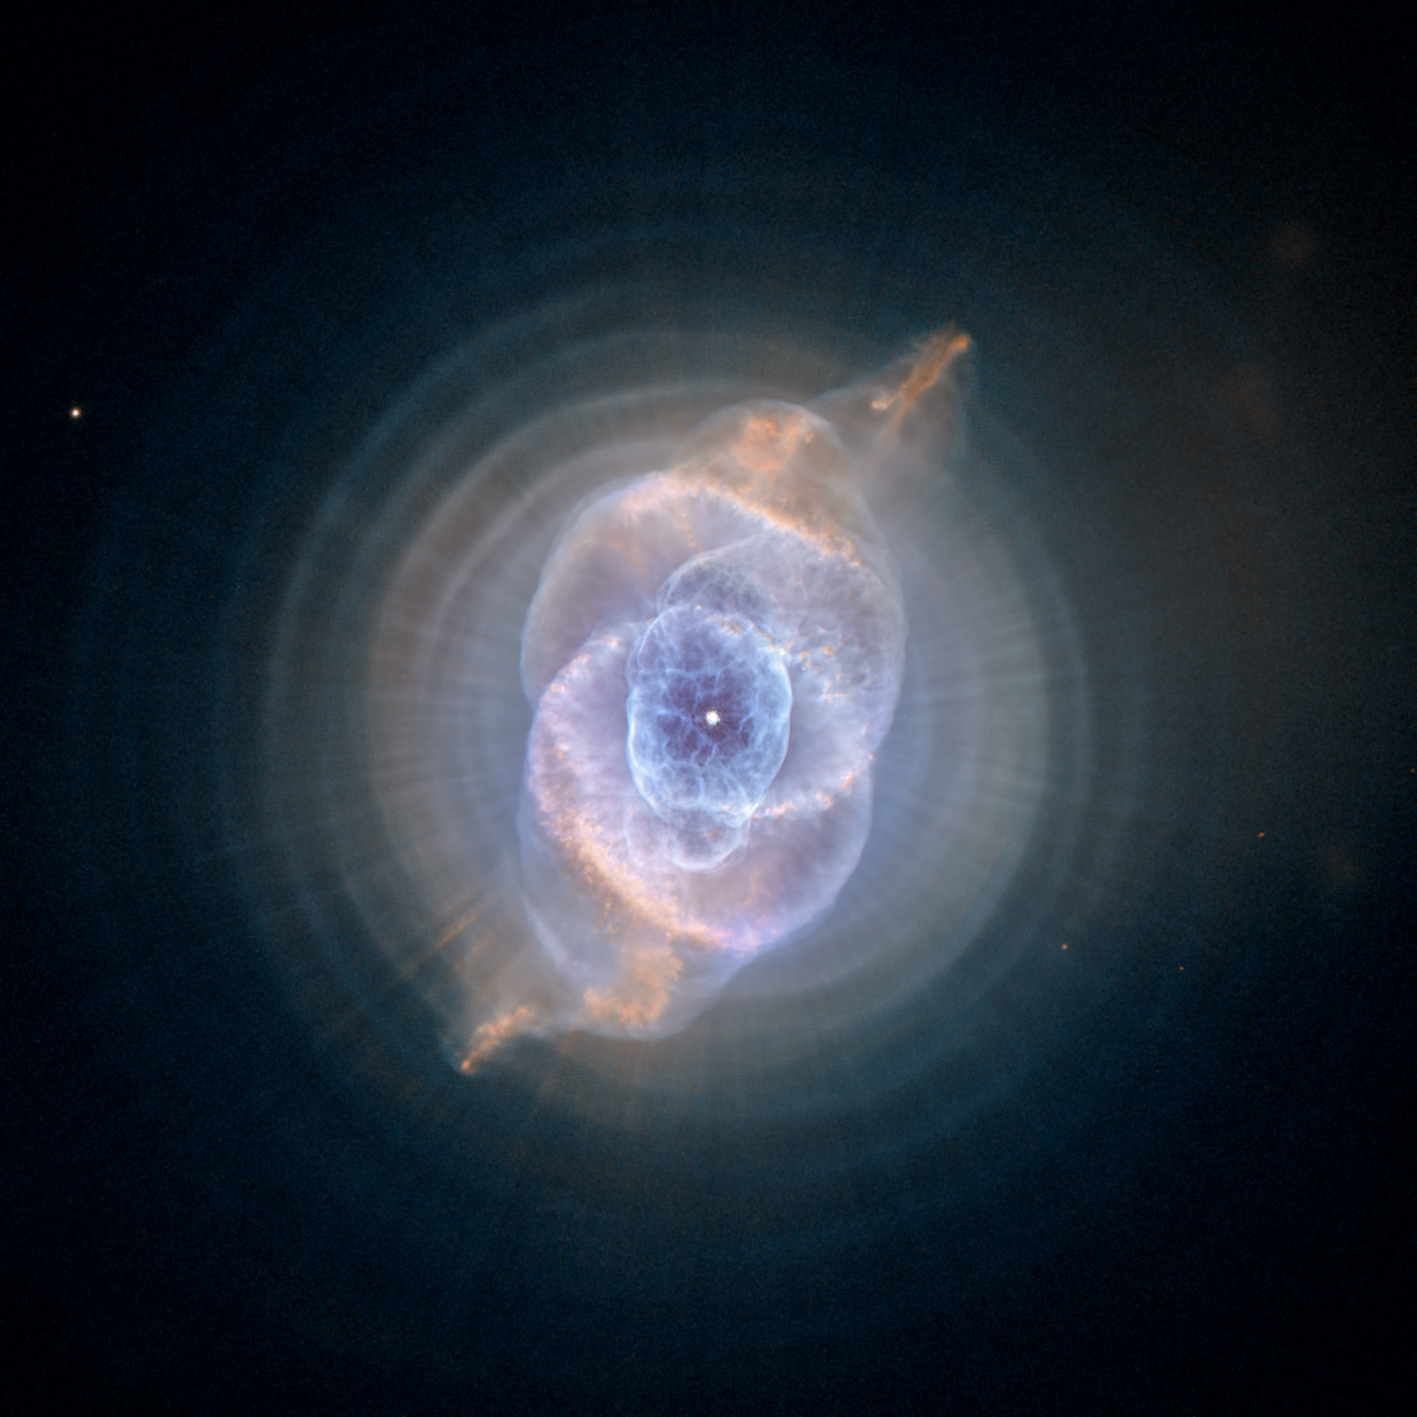 la splendida nebulosa Occhio di Gatto (Cat's Eye)